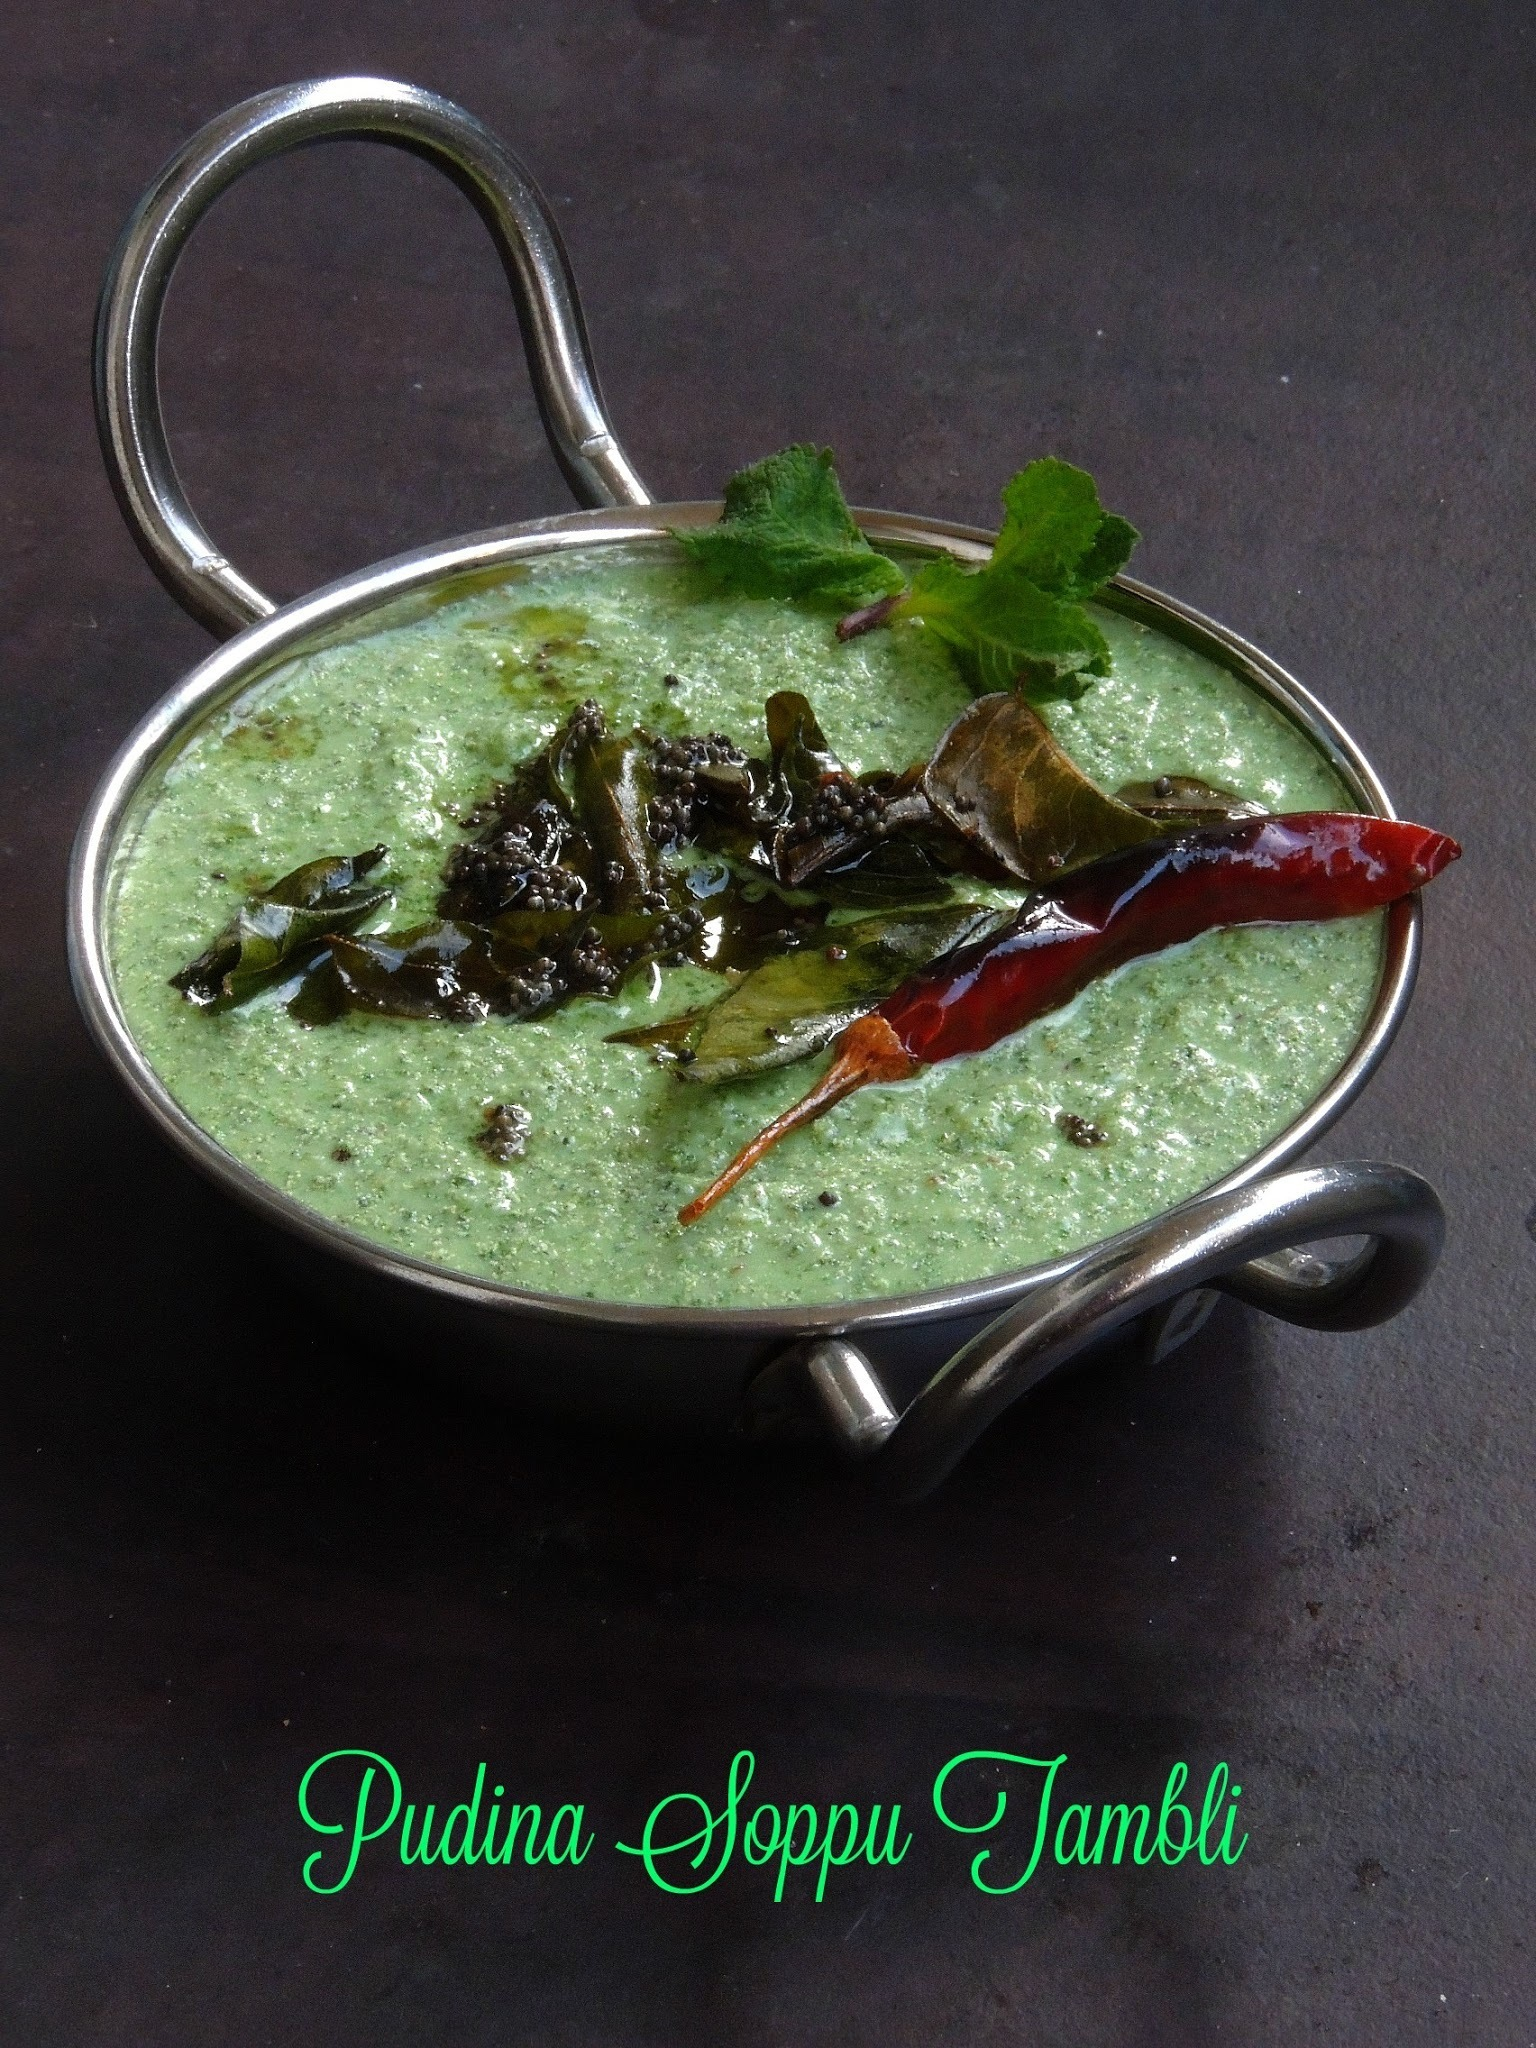 Pudhina Soppu Tambli/Mint Leaves Sour Curry